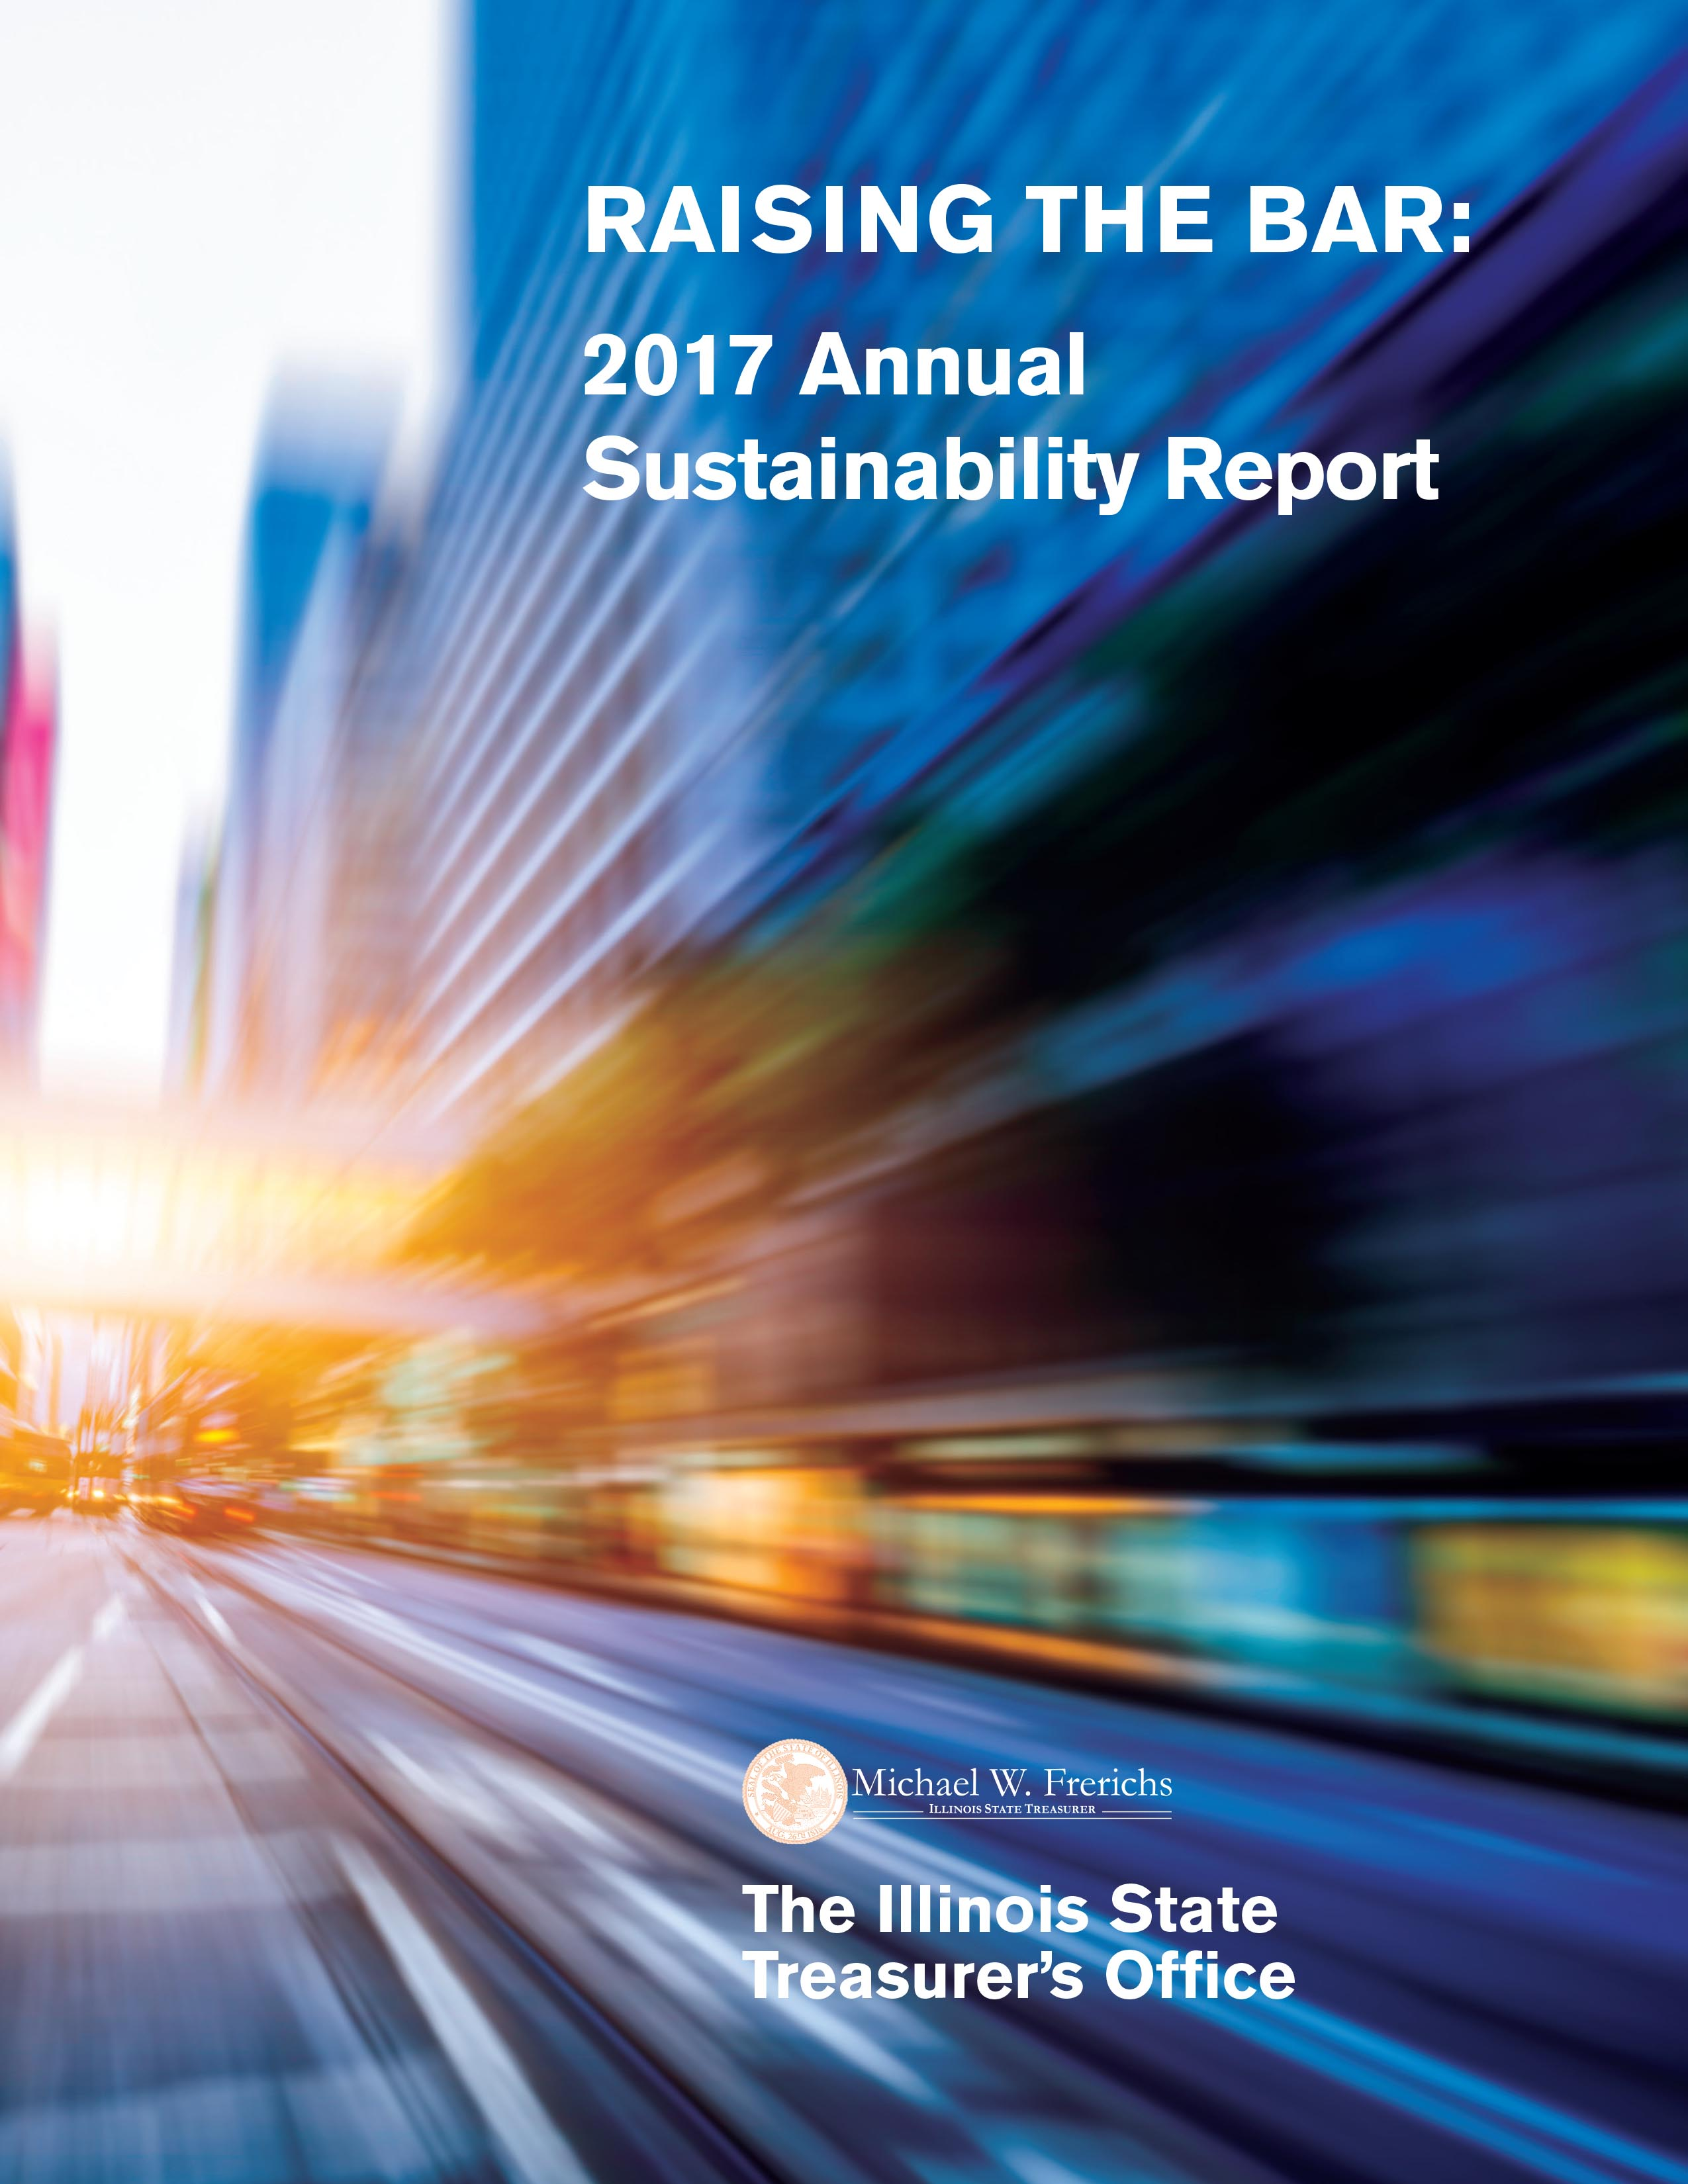 2017 Annual Sustainability Report